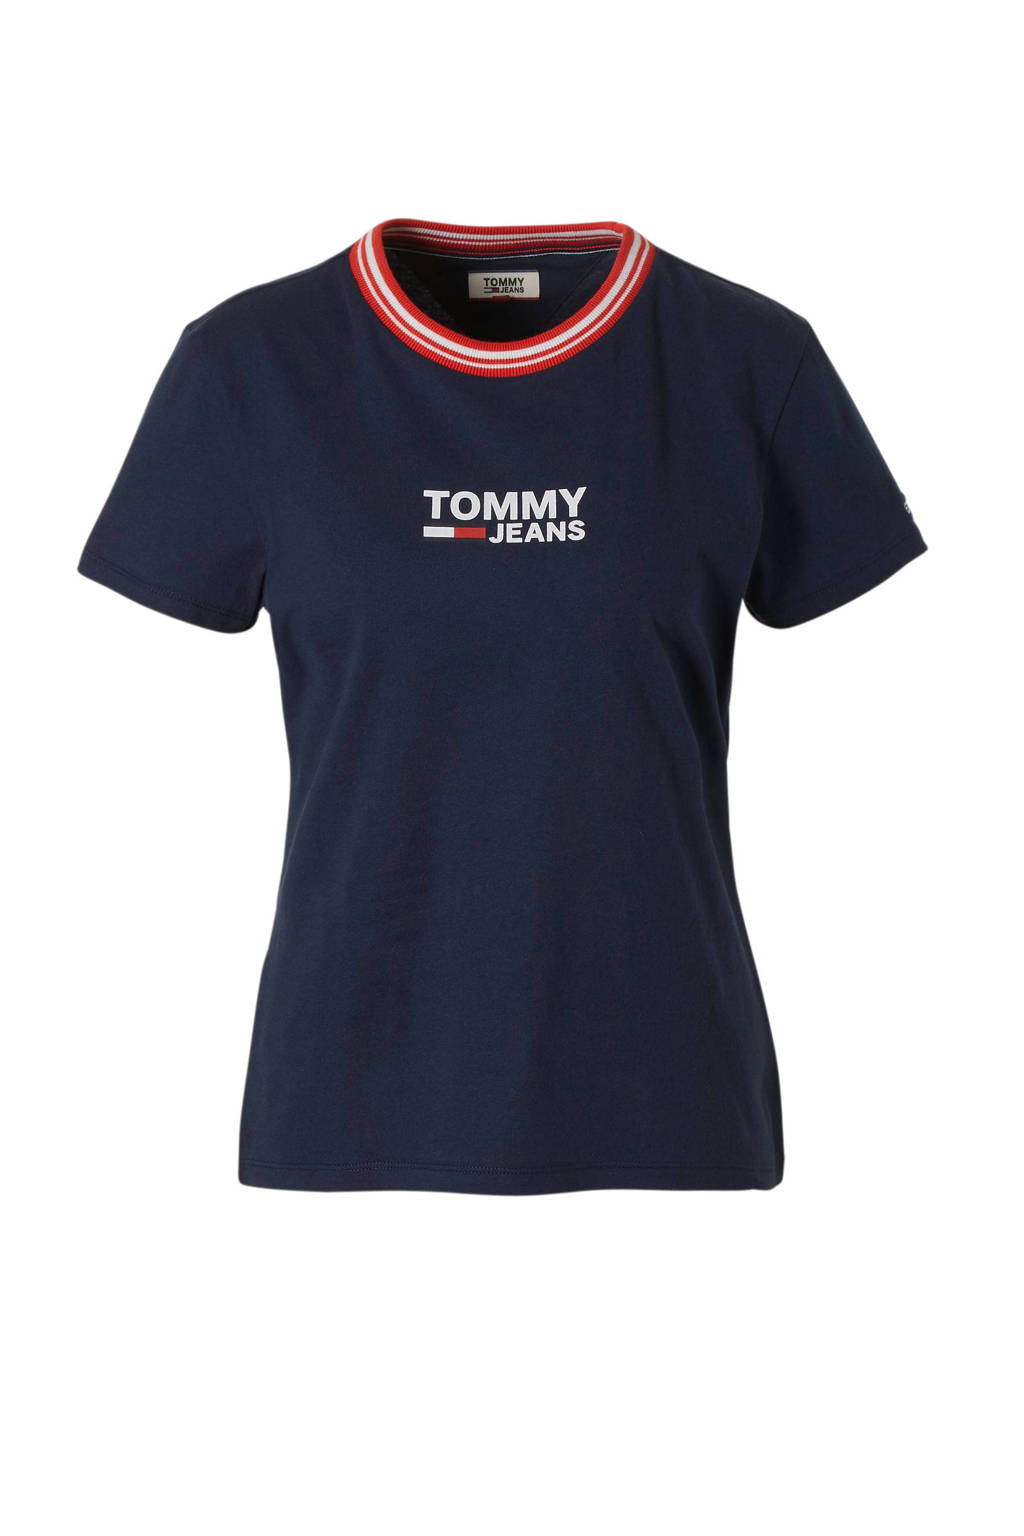 Tommy Jeans T-shirt rood met logo print, Donkerblauw/rood/wit